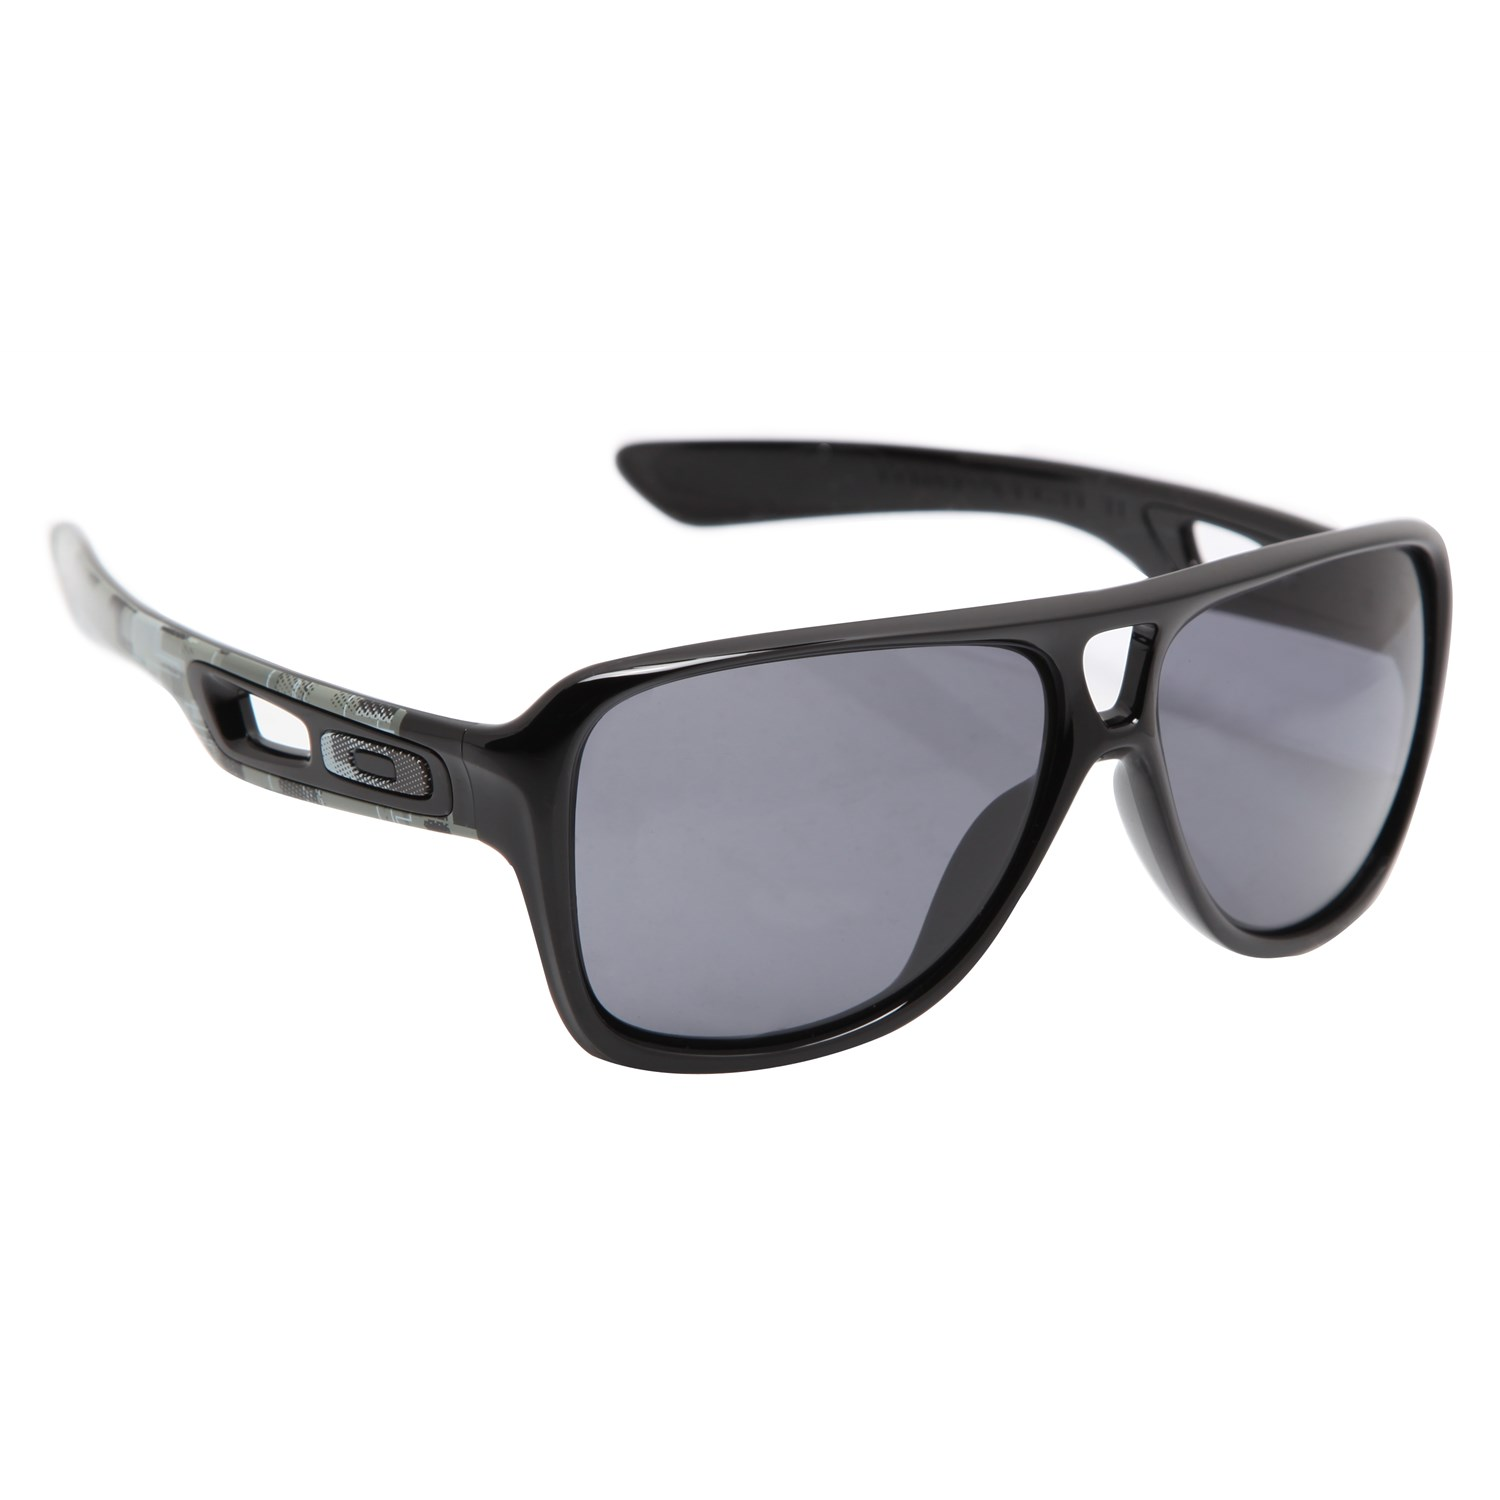 oakley dispatch sunglasses matte black  oakley d mph dispatch ii gp75 sunglasses matte black grey